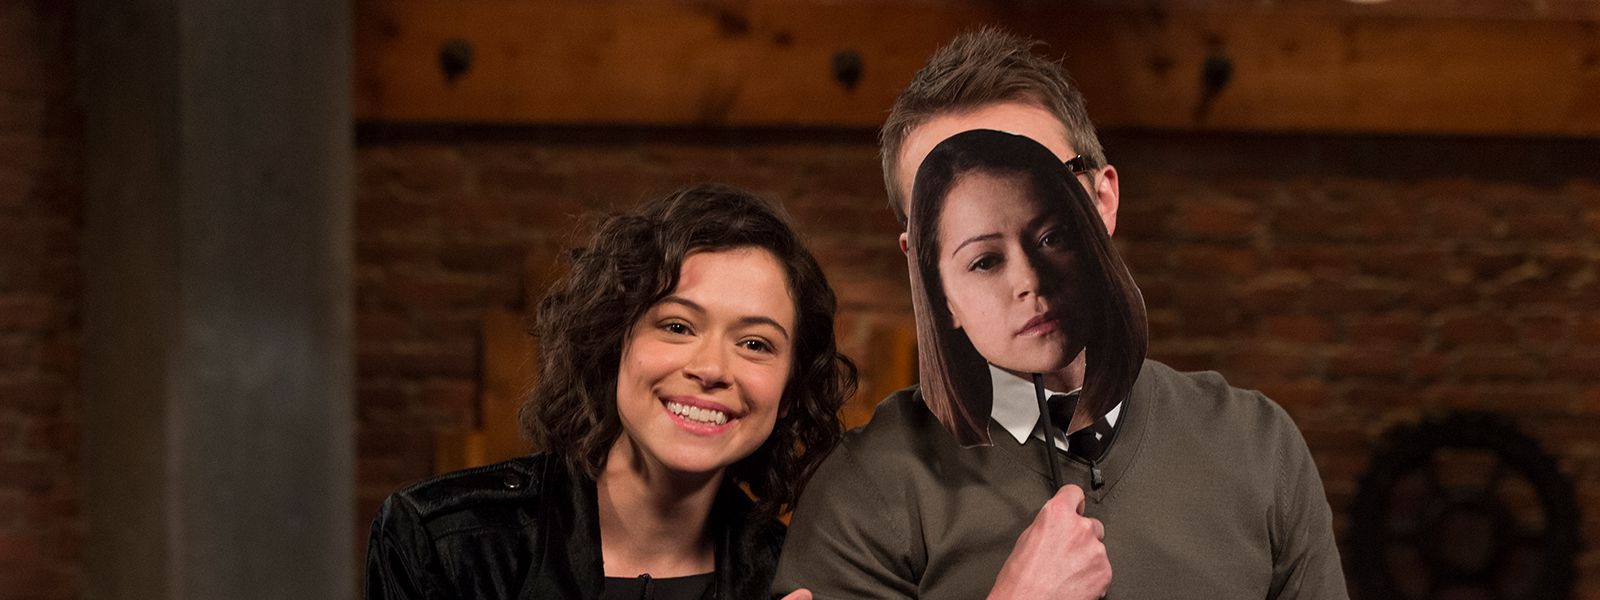 talking-with-chris-hardwick-episode-115-tatiana-maslany-chris-hardwick-800×600